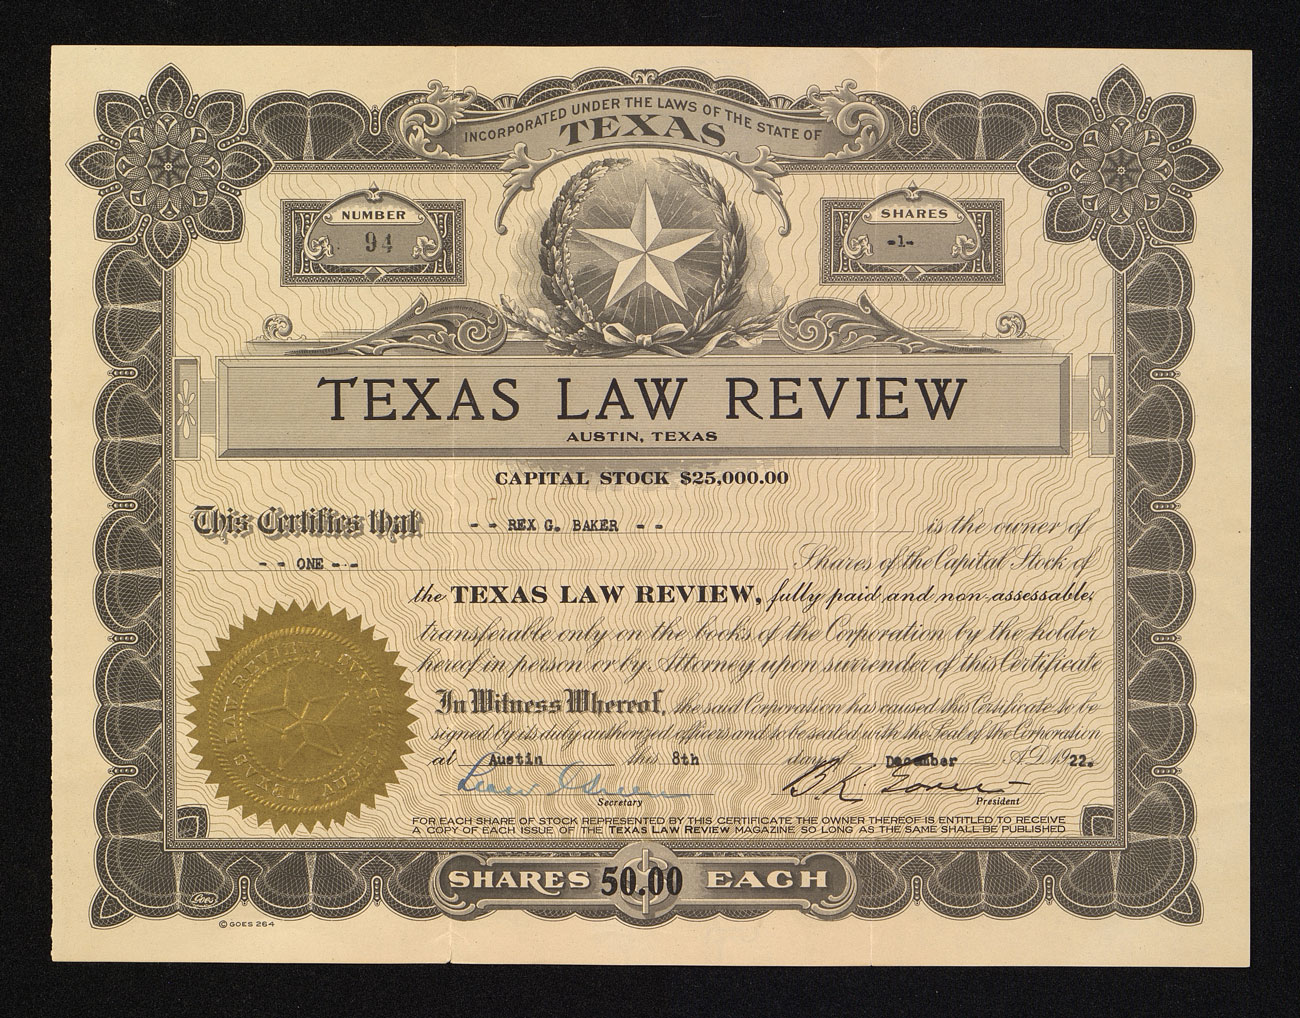 Texas Law Review stock certificate